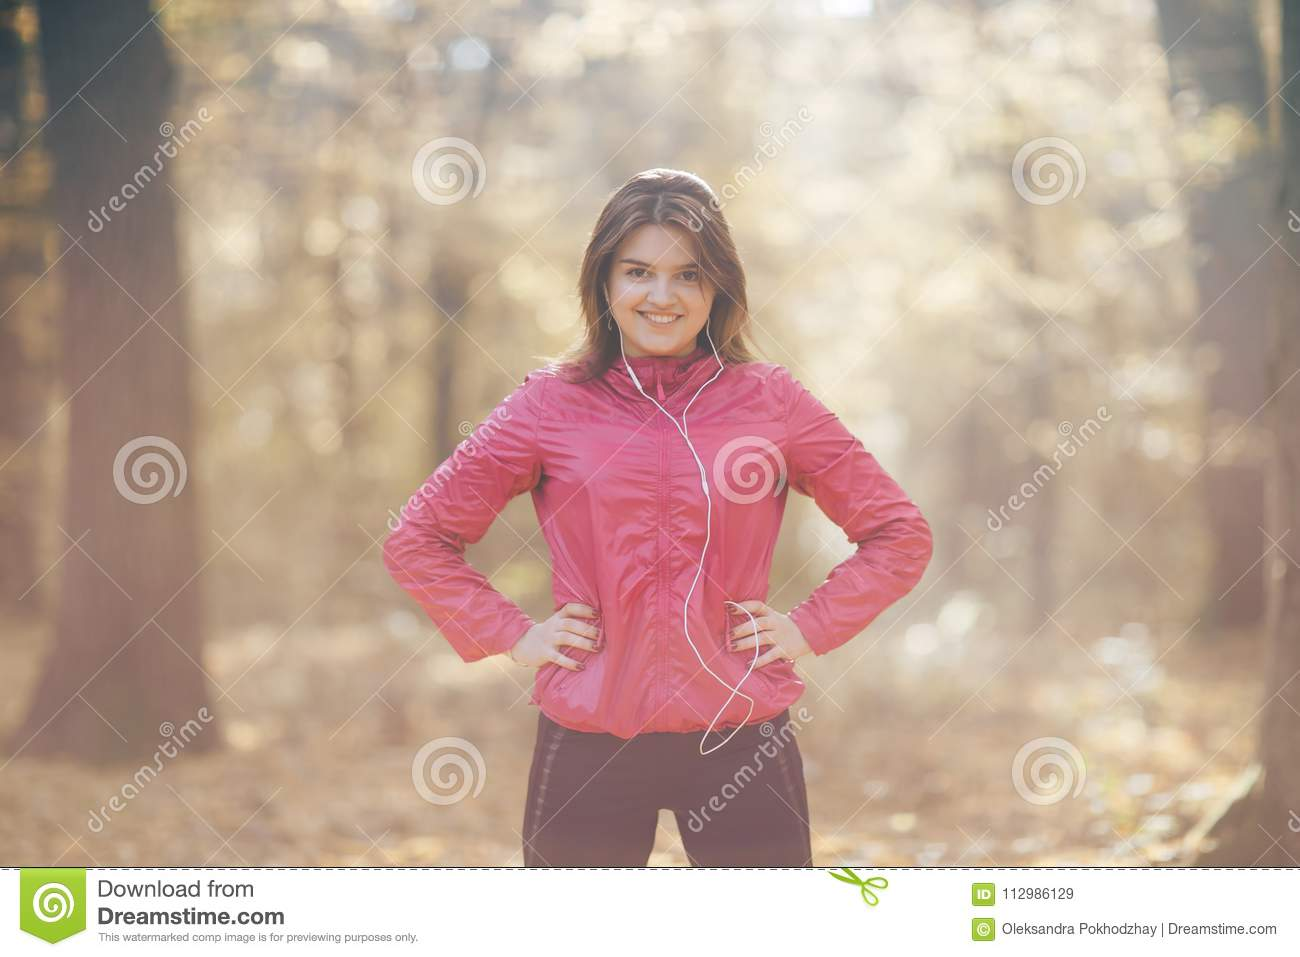 Portrait of a girl who trains and listens to music in the morning autumn park